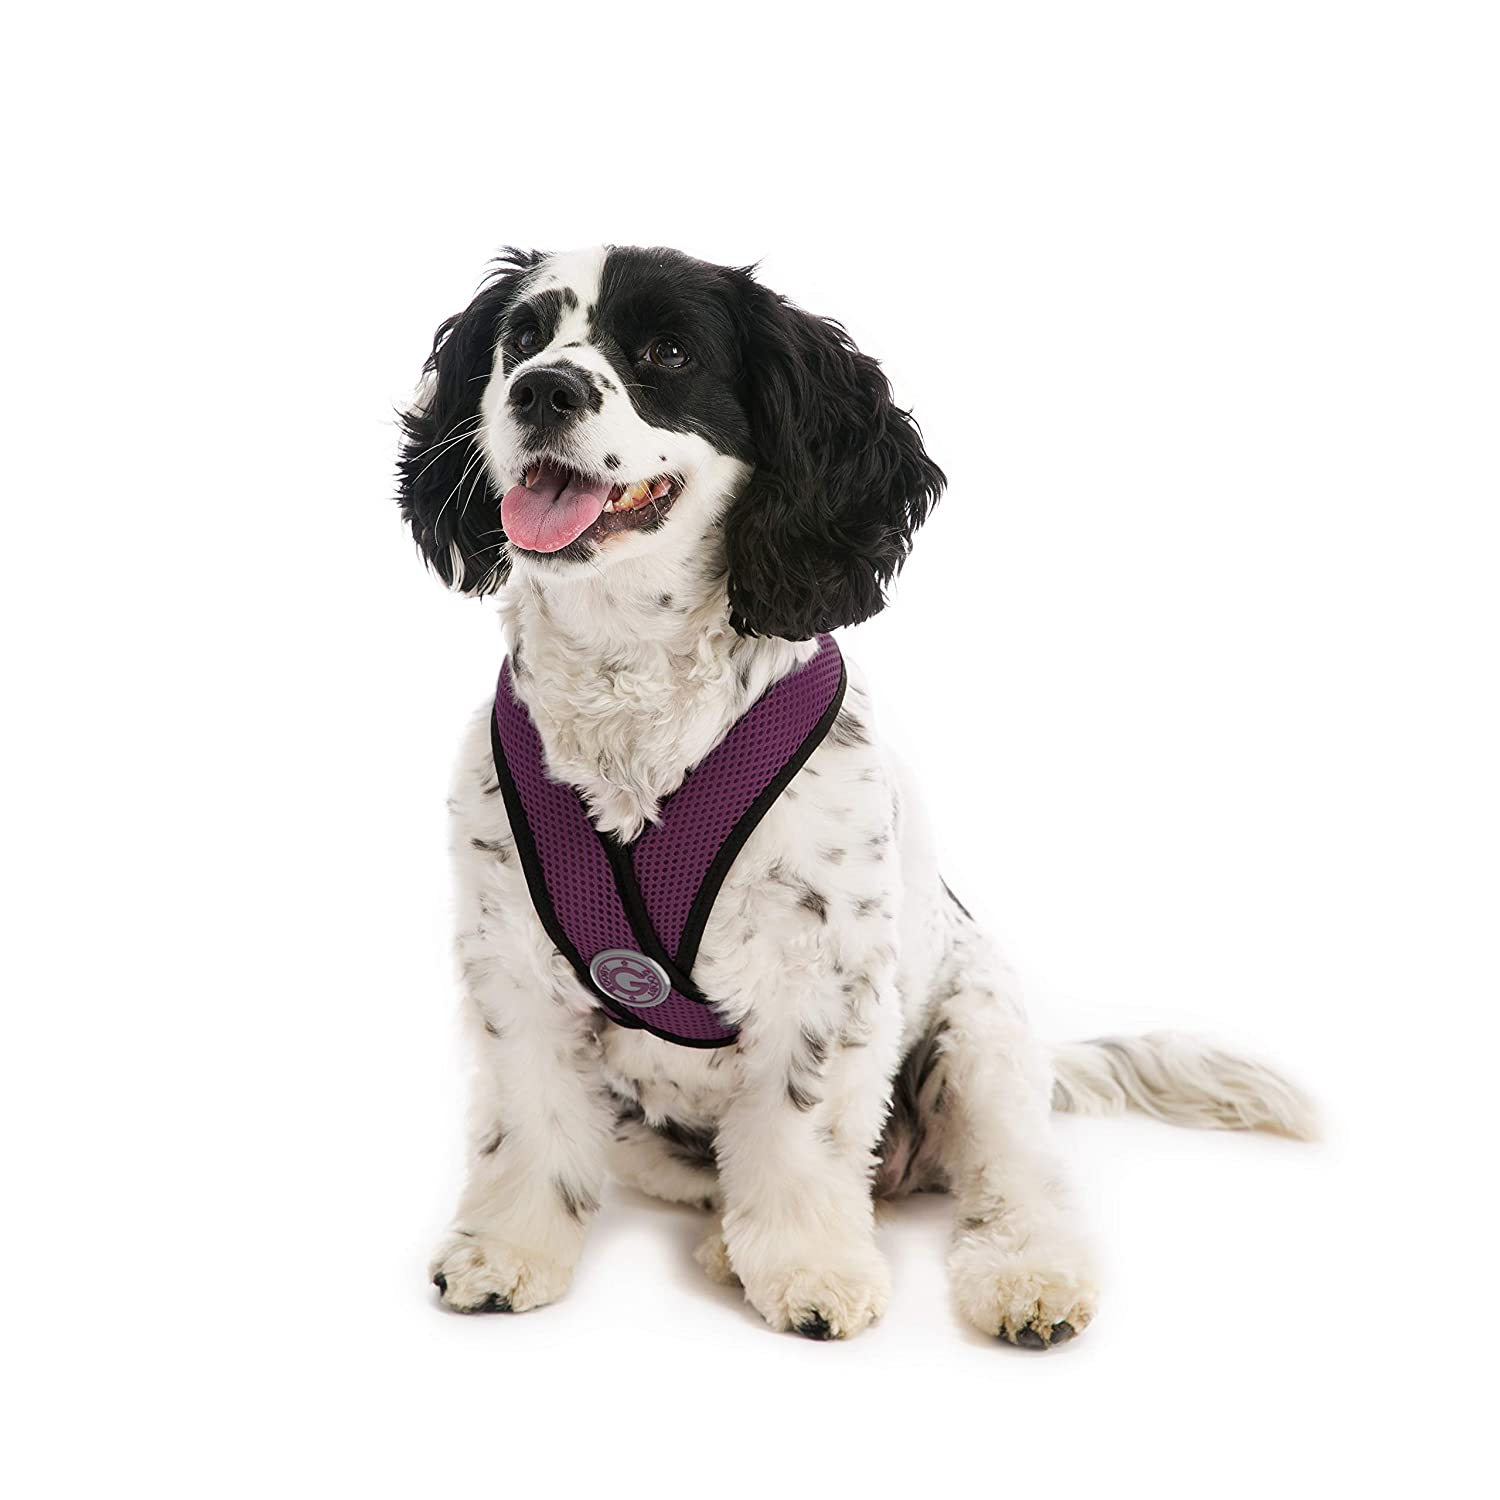 Purple XLGooby Gooby Choke Free Comfort Soft Dog Harness, Black, XLarge